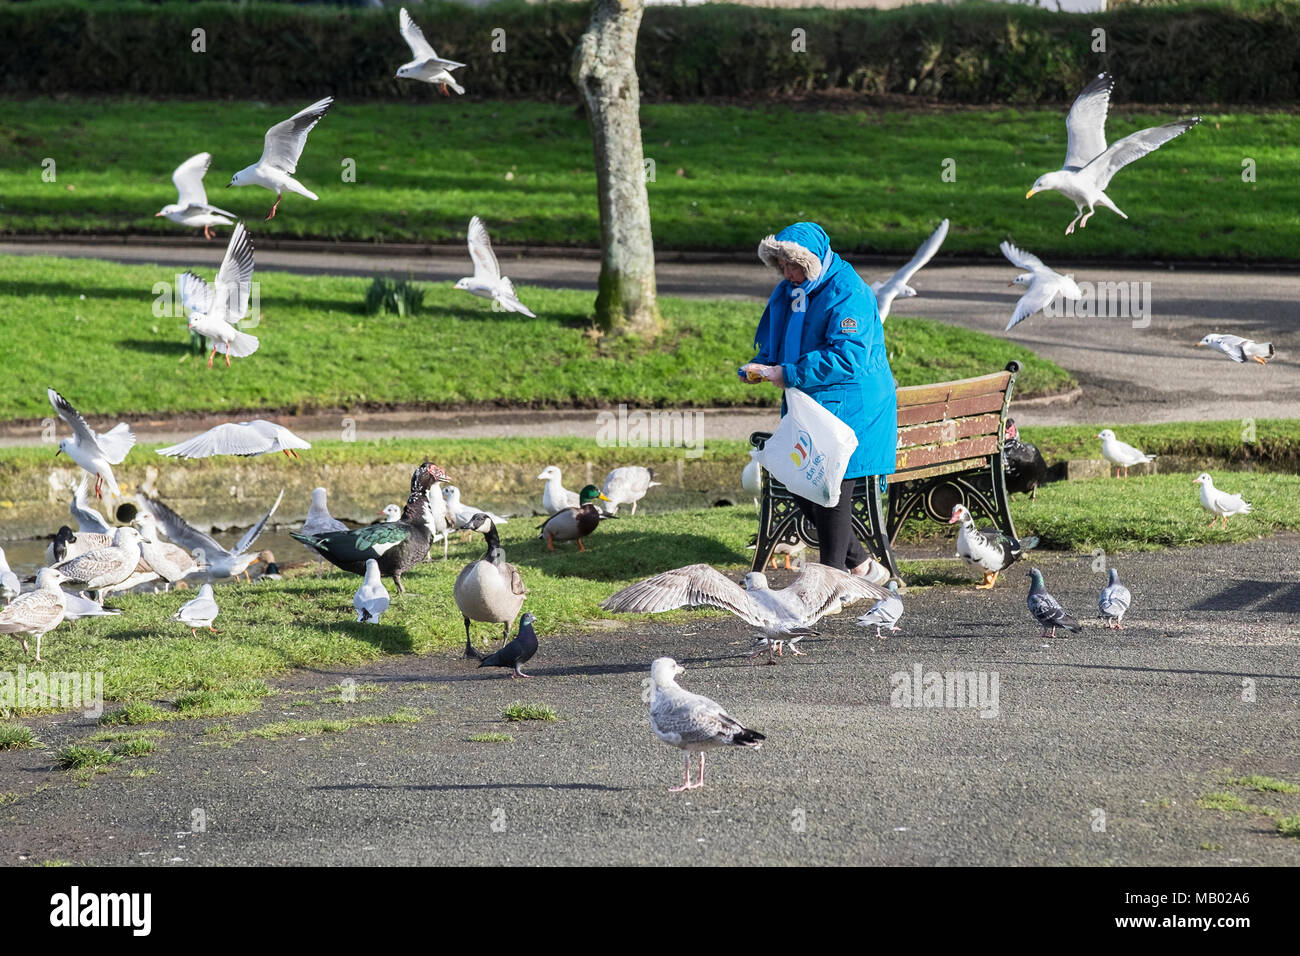 A woman feeding various types of seagulls in Trenance Park in Newquay in Cornwall. - Stock Image